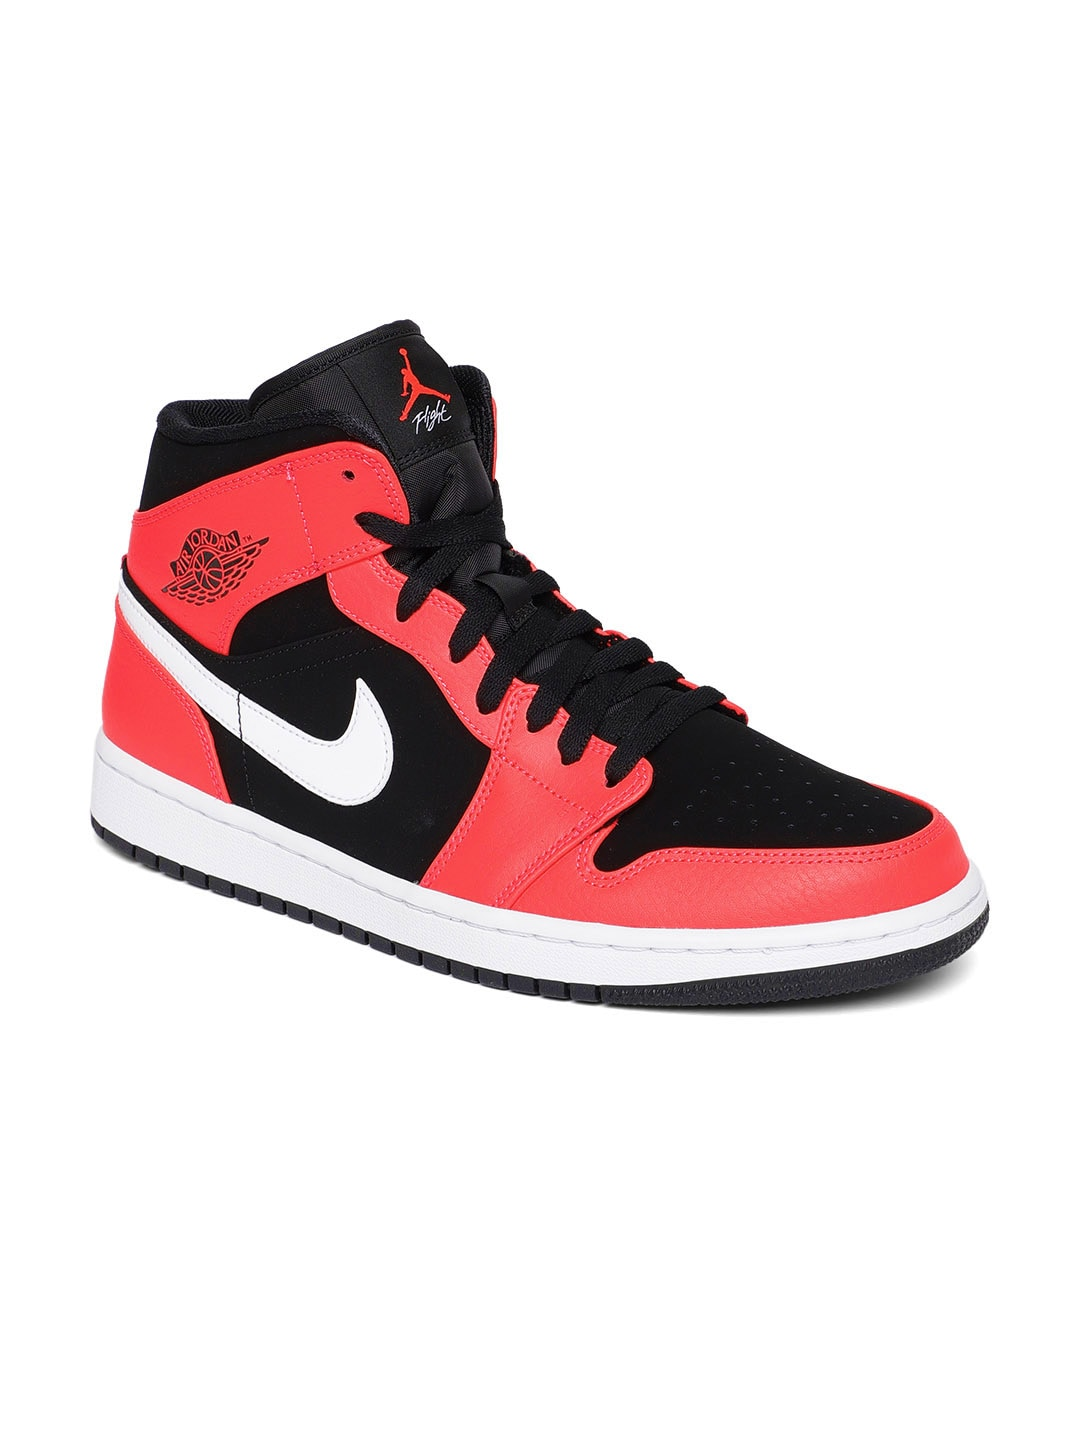 79a75247056 Nike Basketball Shoes